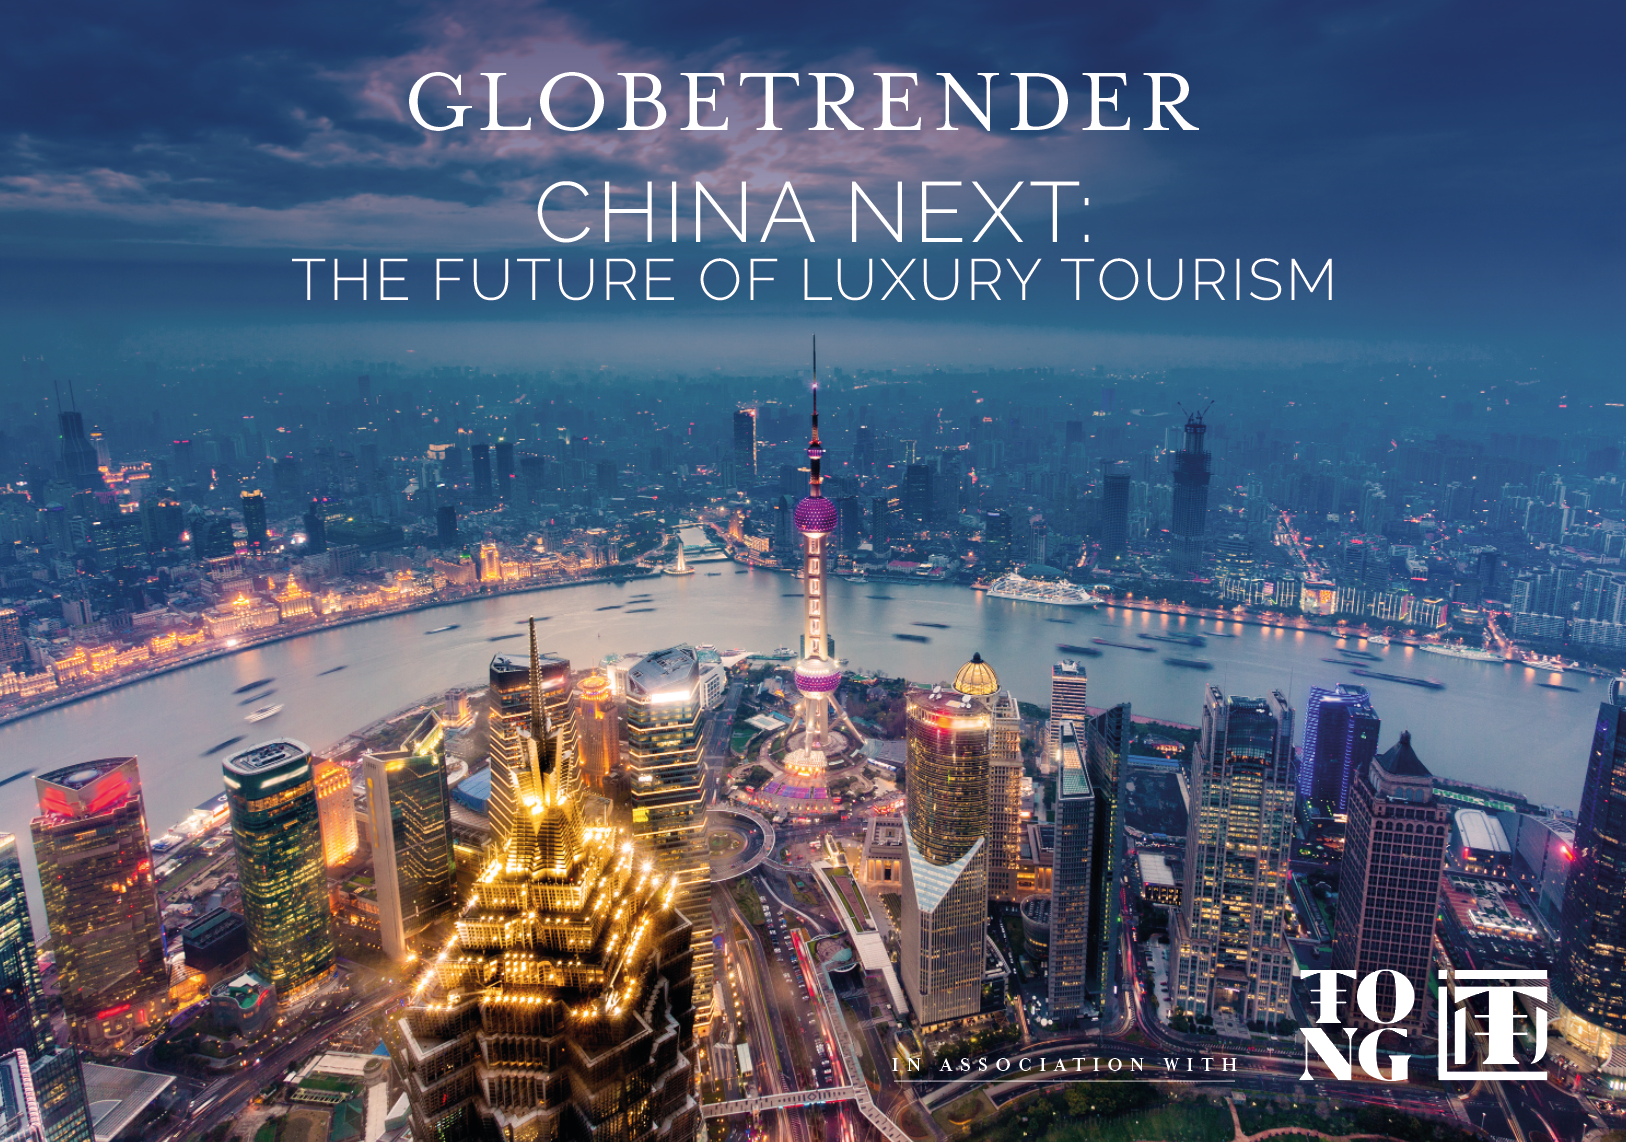 China Next: The Future of Luxury Tourism